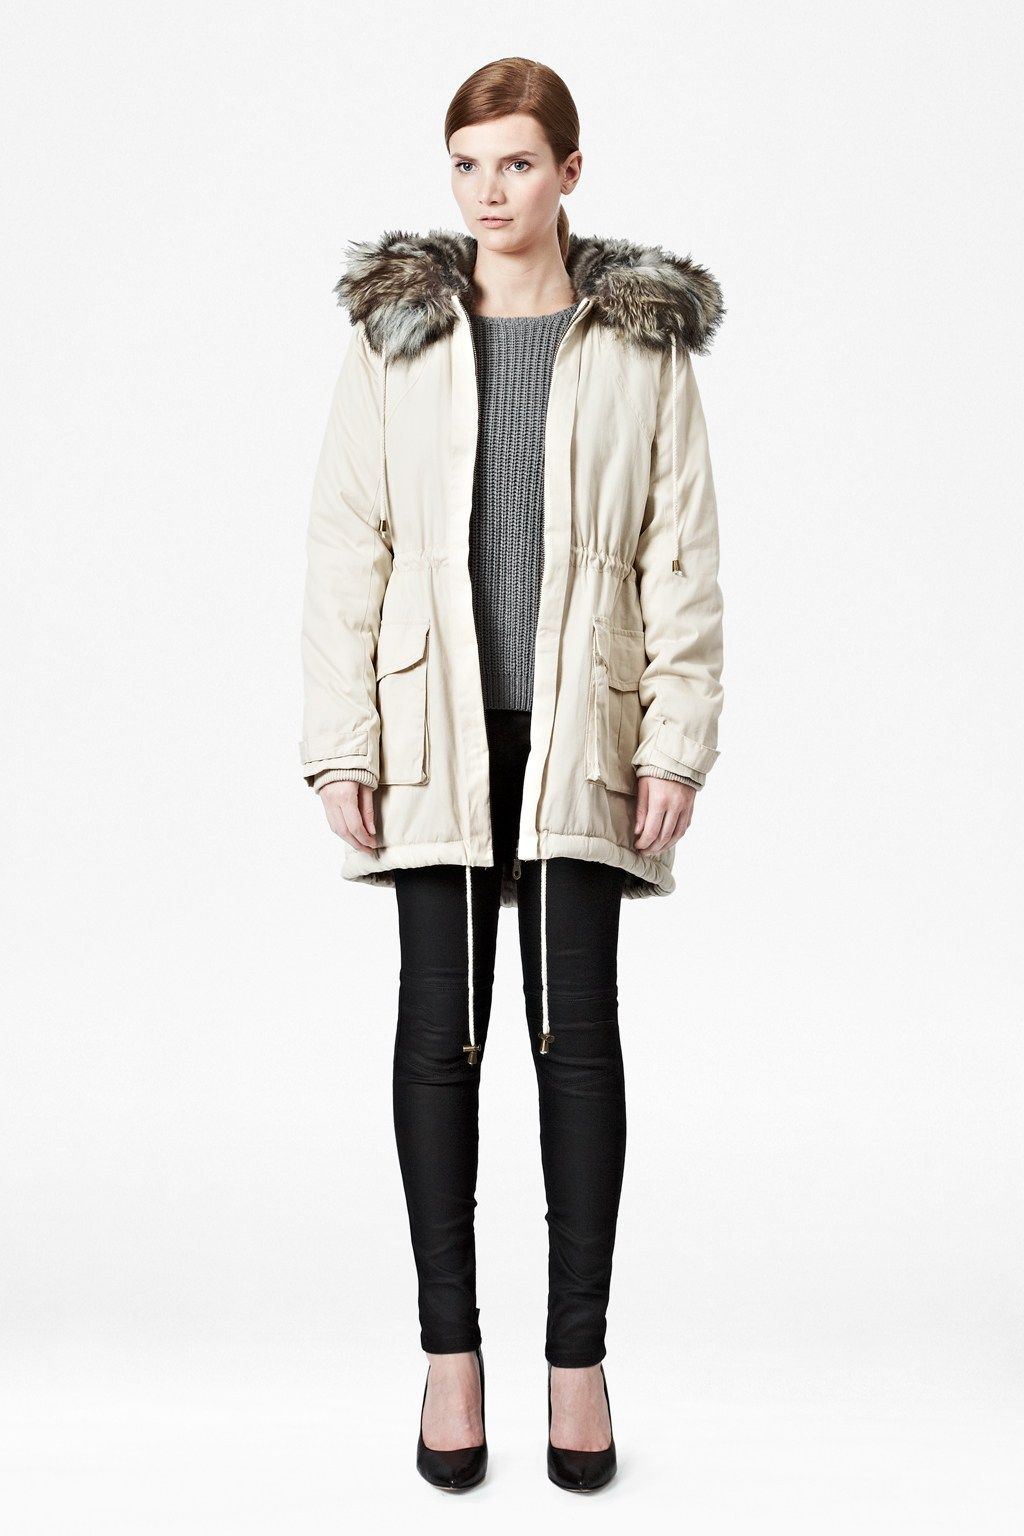 Freda Hooded Parka Coat £220 French Connection | Coats | Pinterest ...